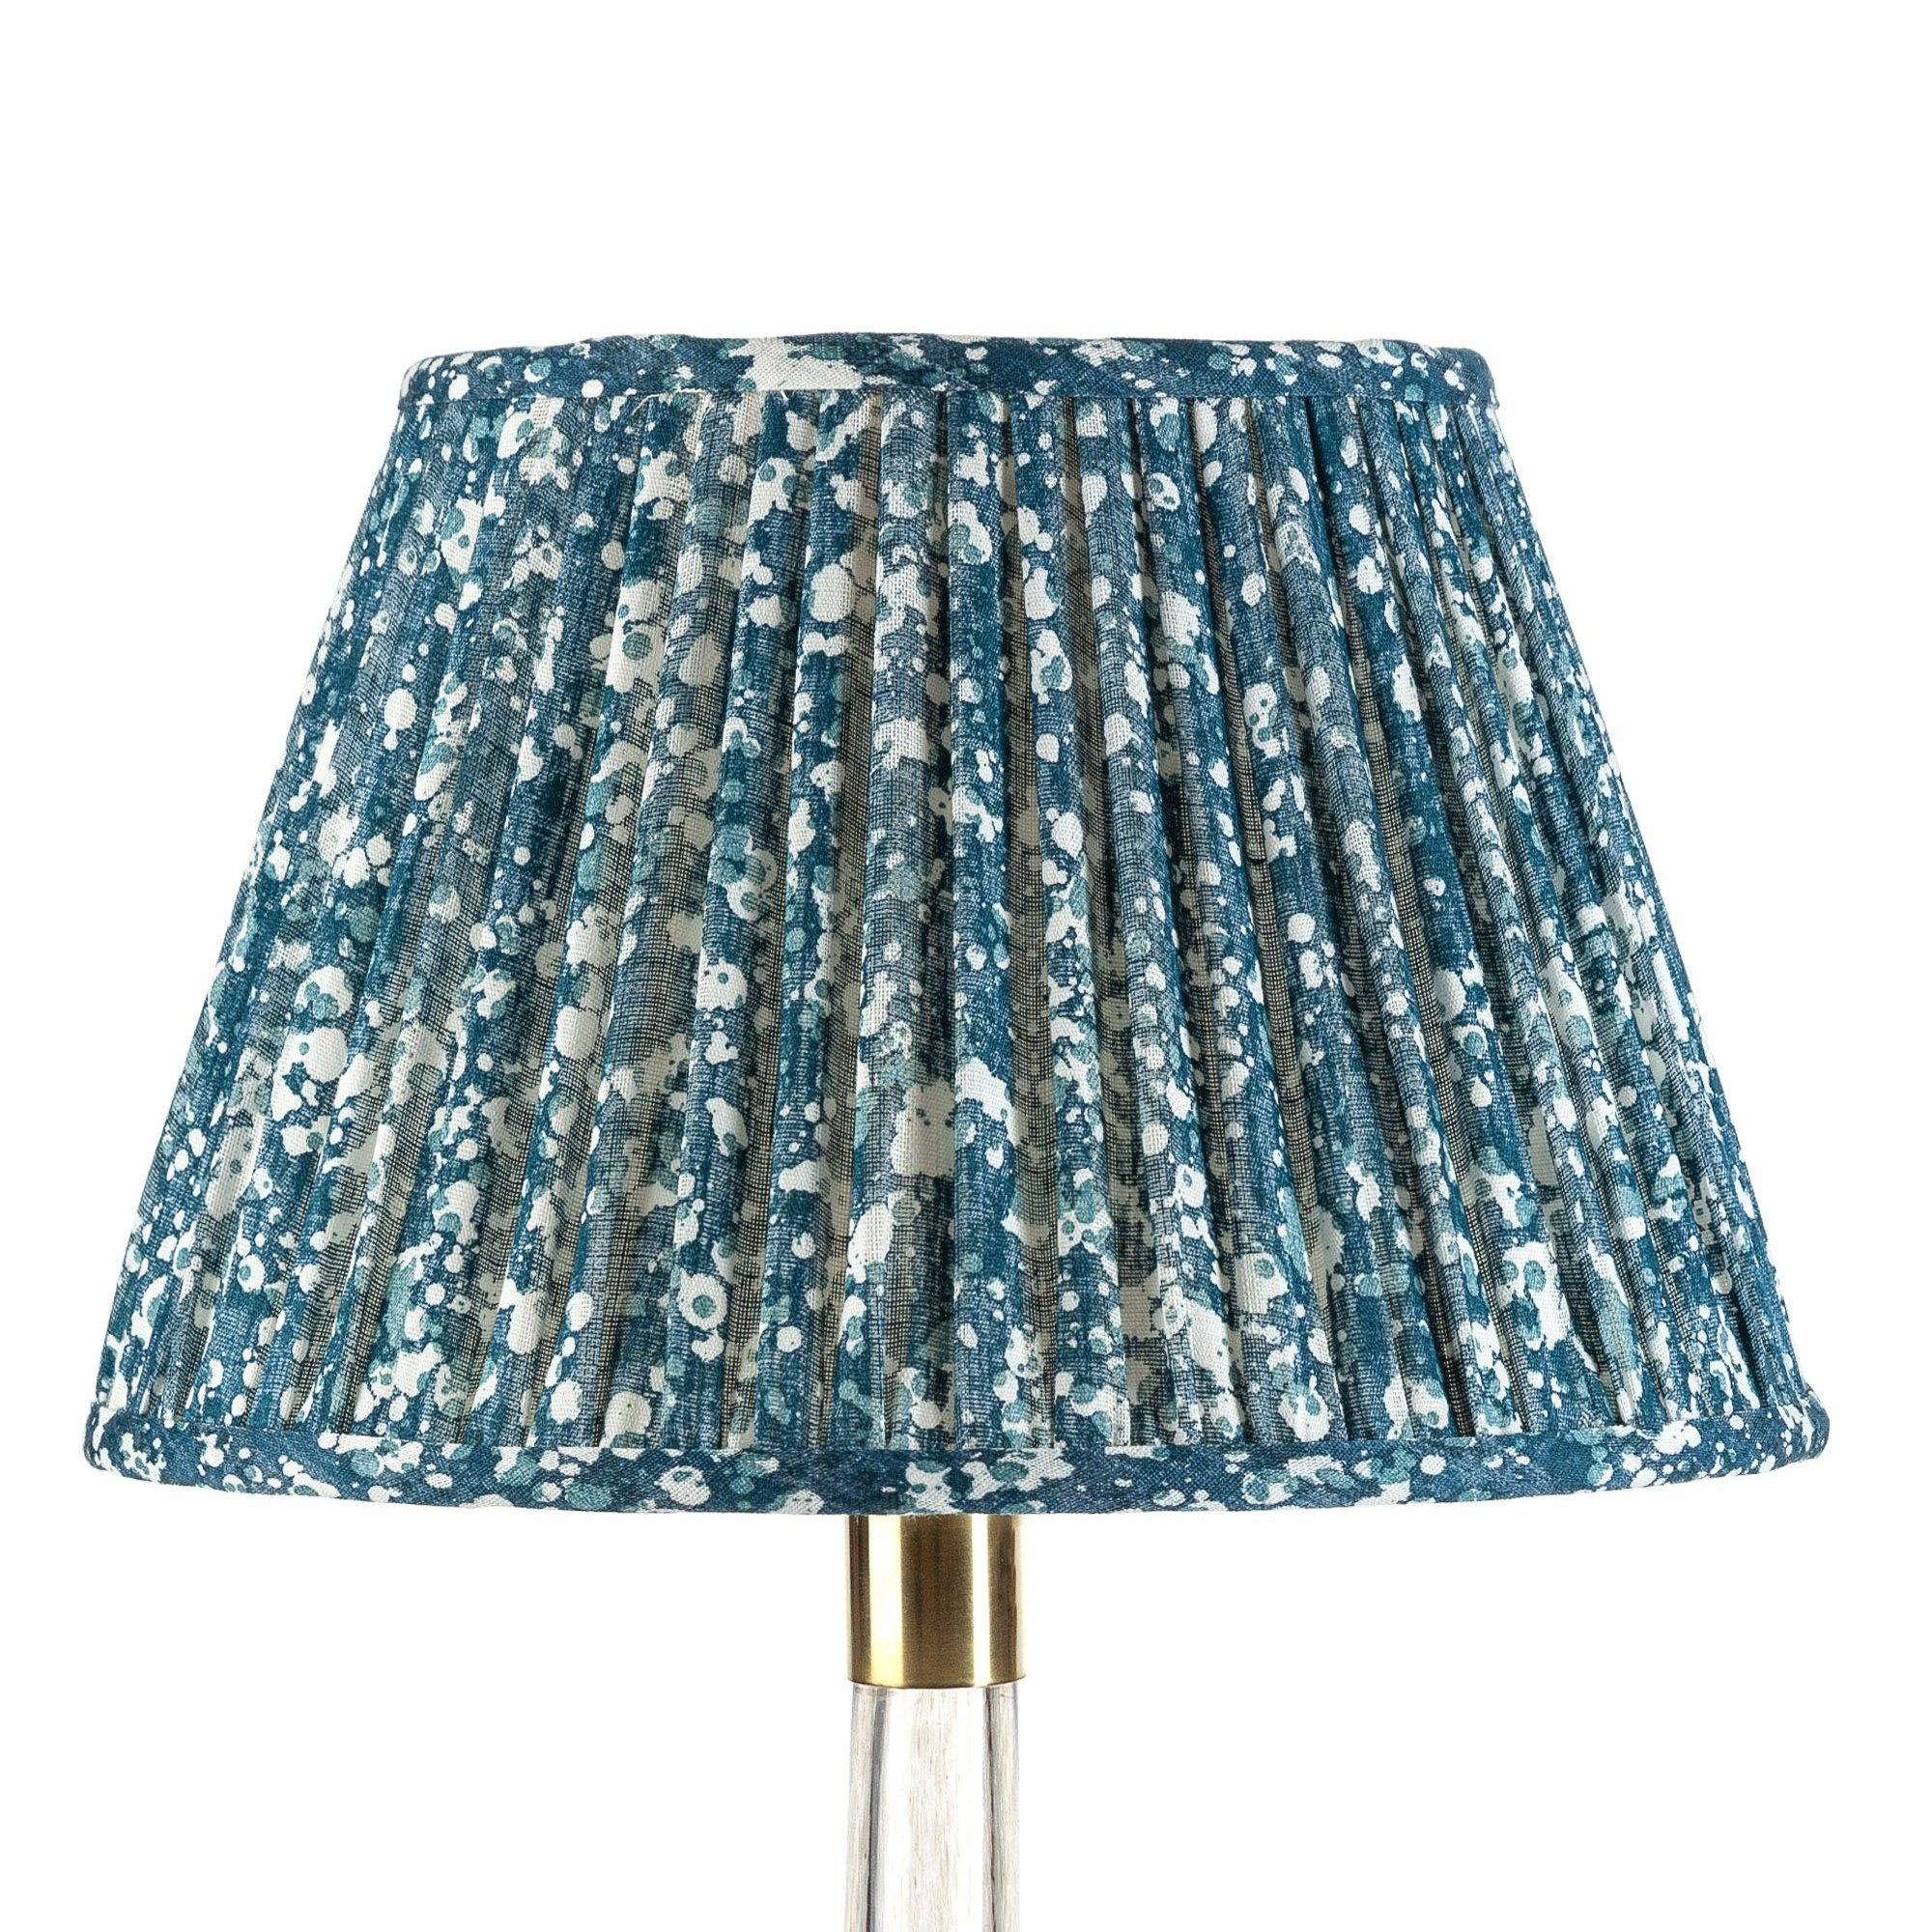 Empire Gathered Lampshade in Blue Quartz 058-1